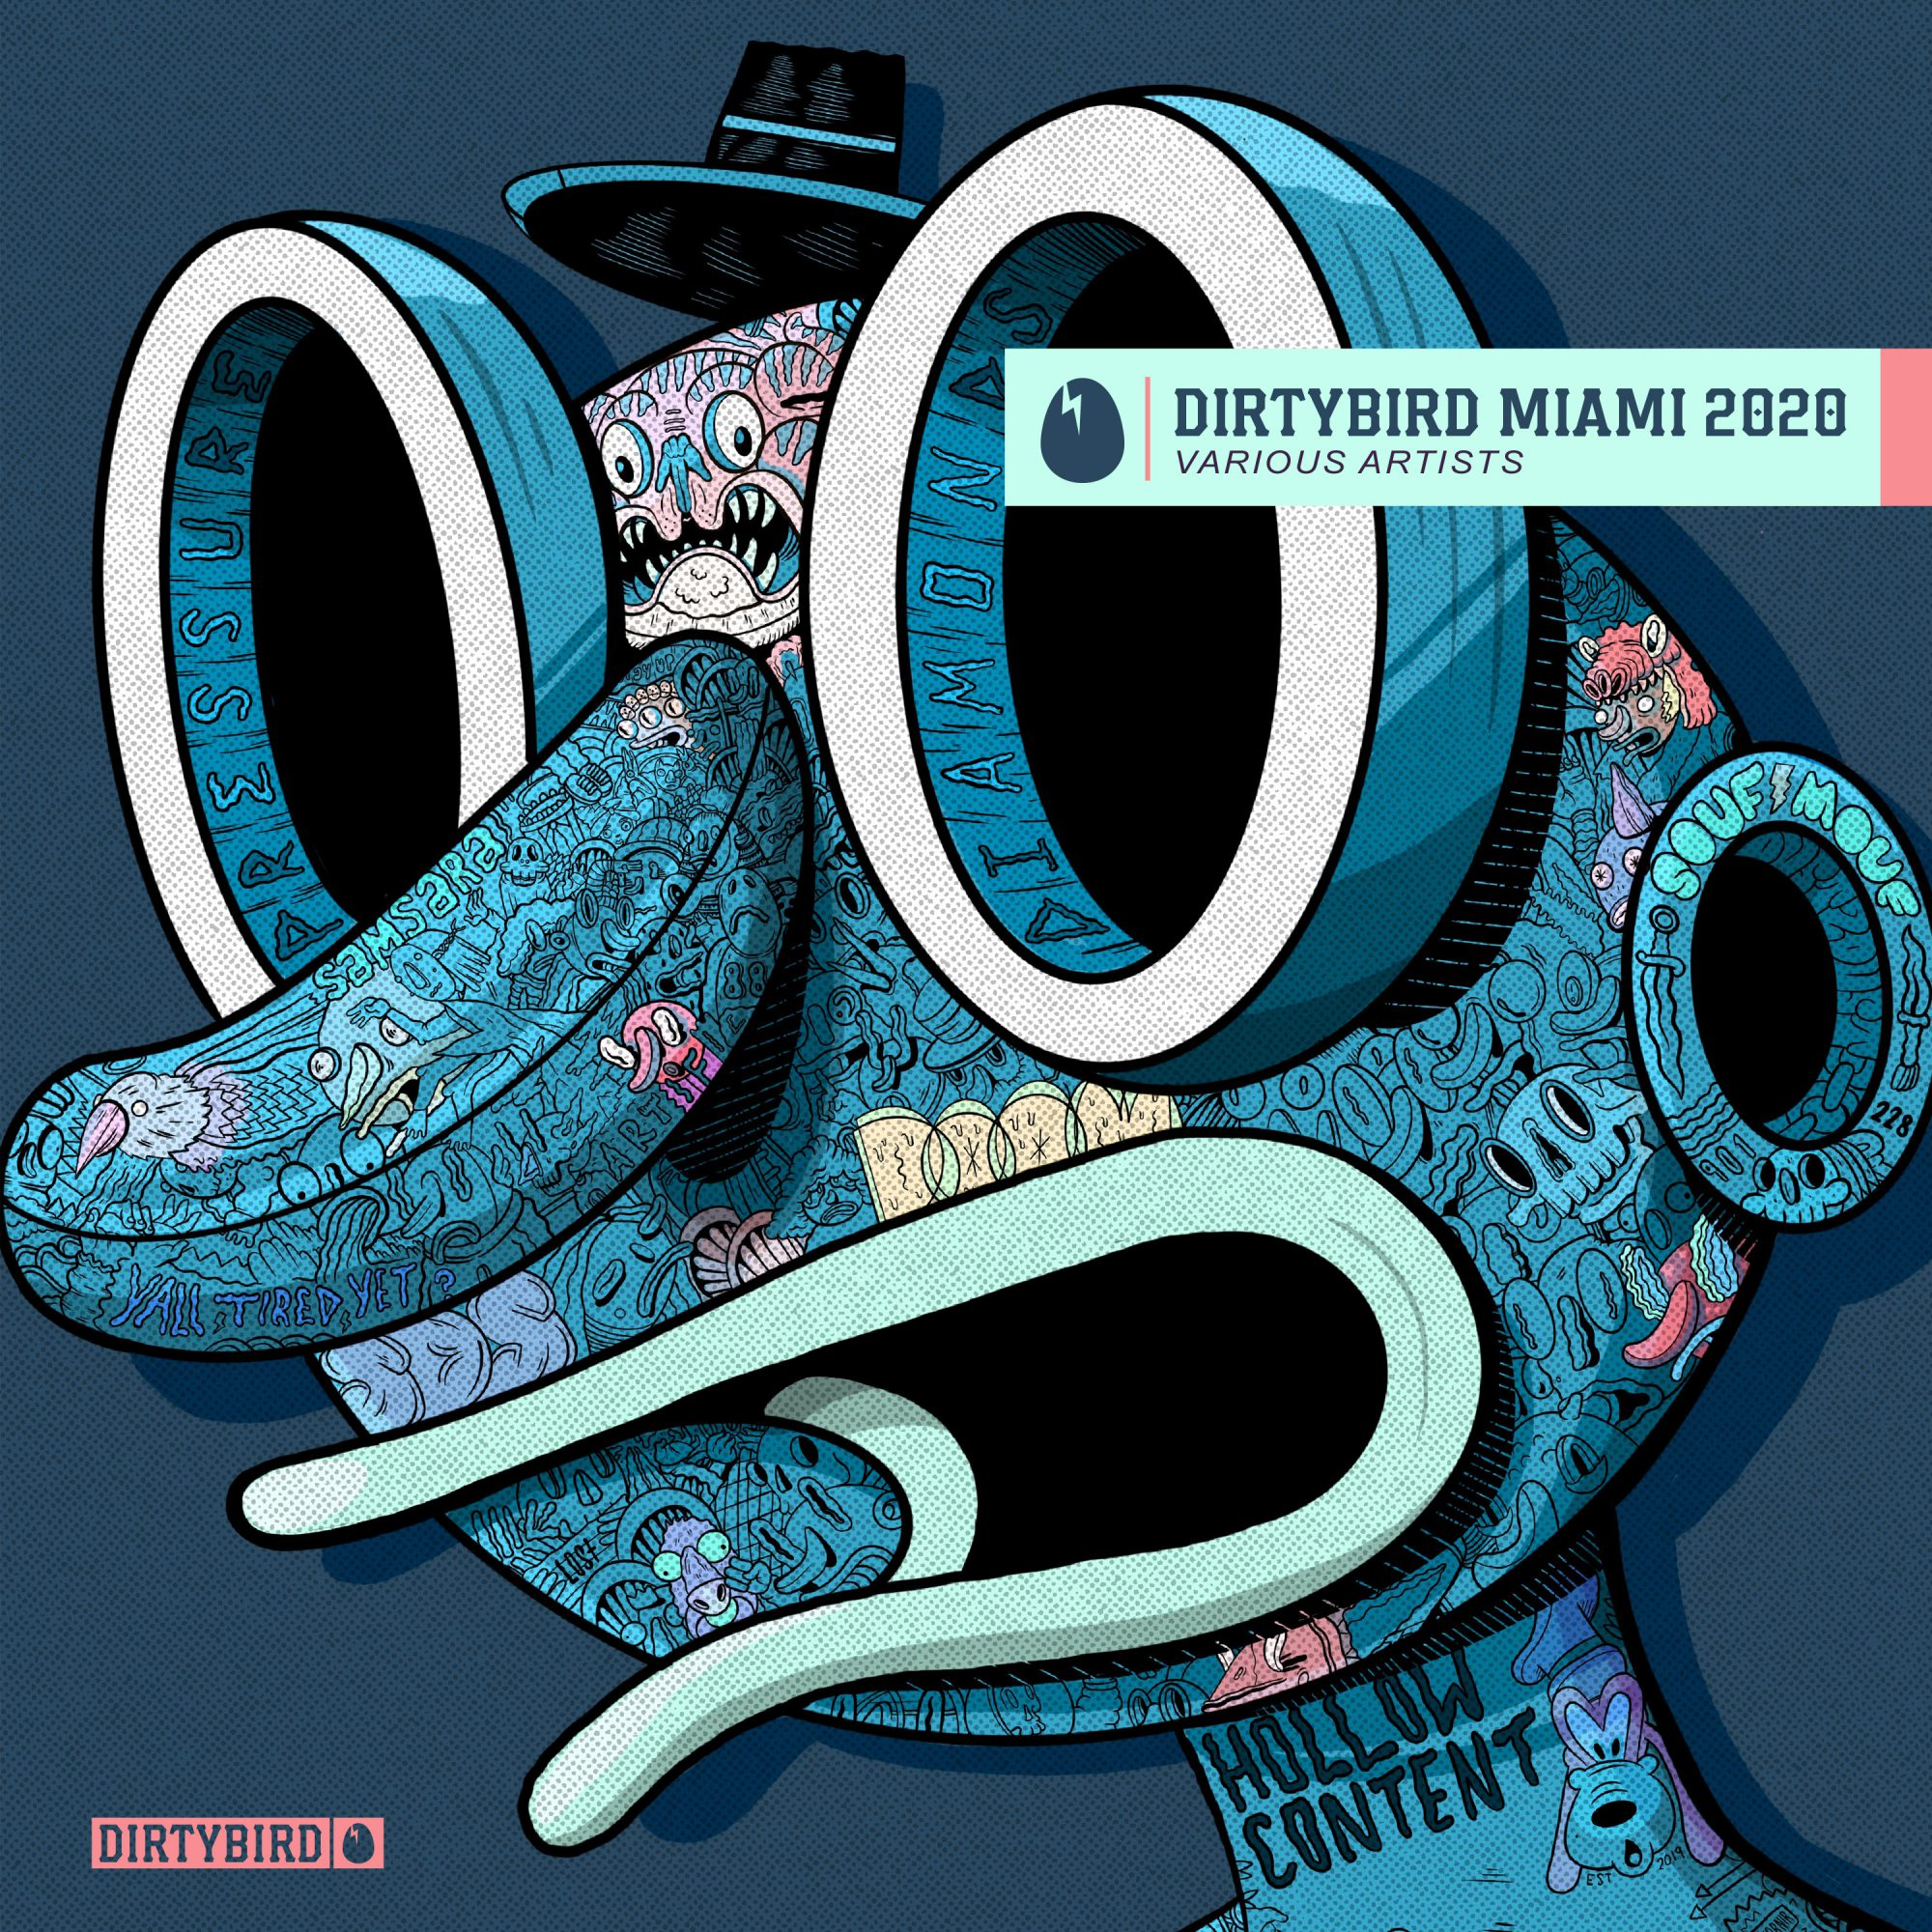 Dirtybird Miami 2020